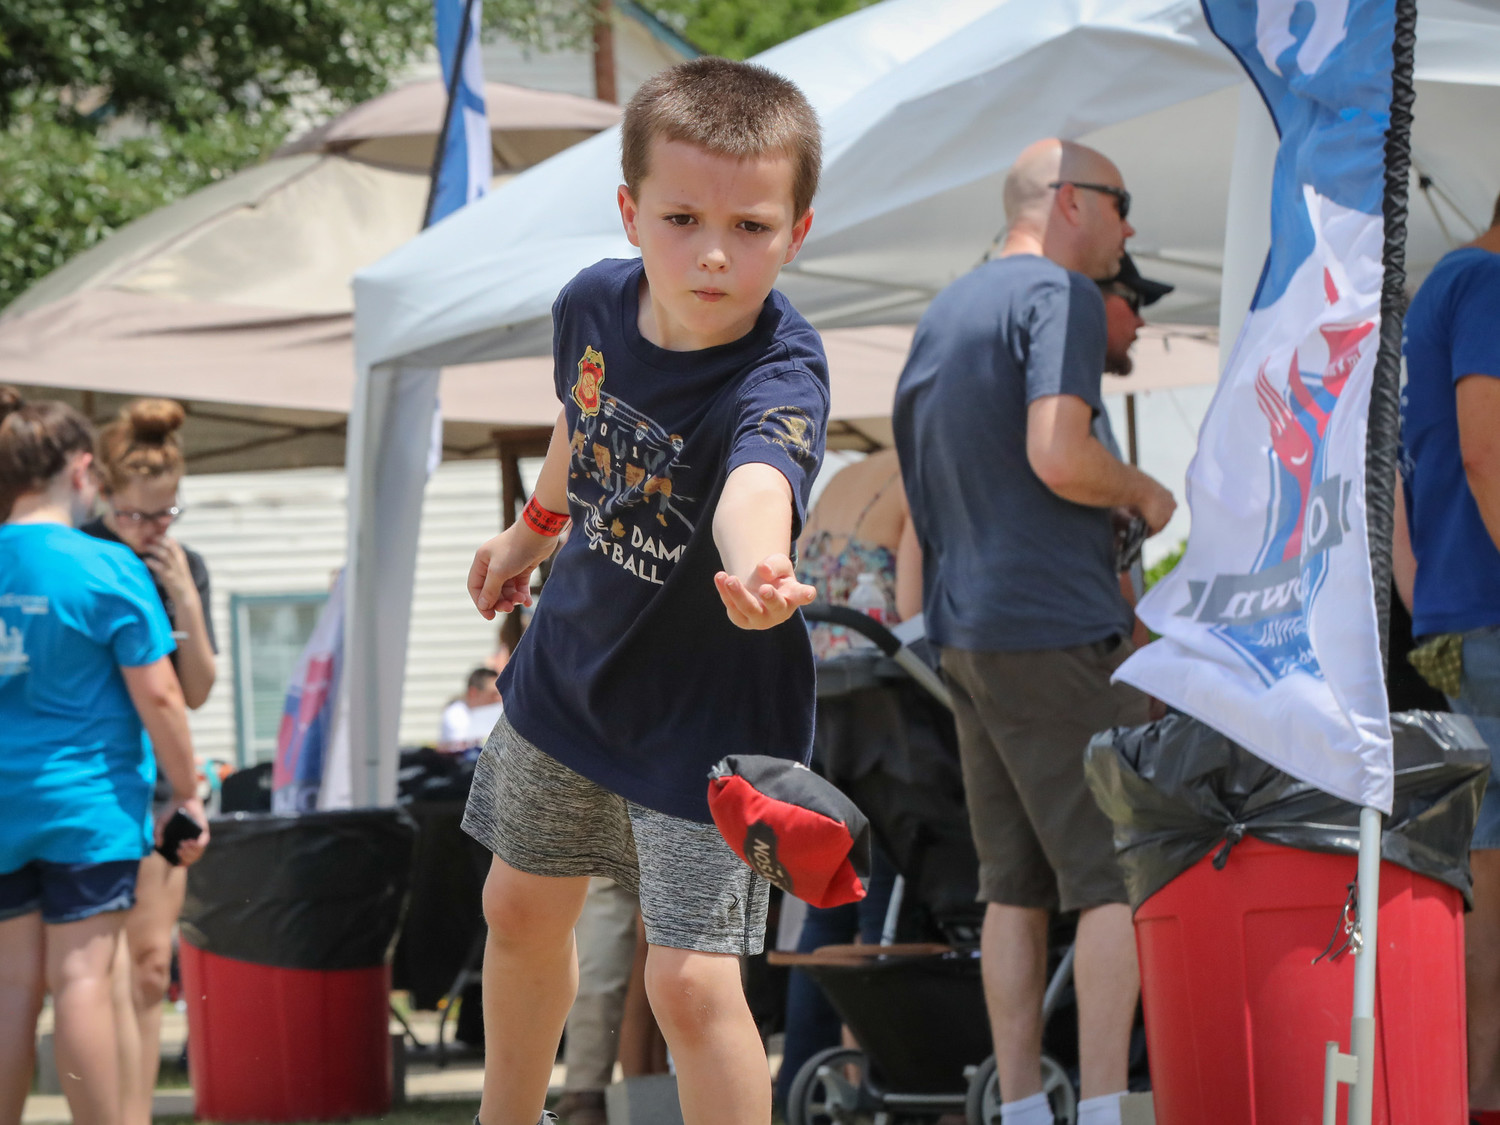 Families enjoyed the clear skies and warm temperatures for the 2018 Leander Old Town Street Festival on Saturday, May 19, 2018.